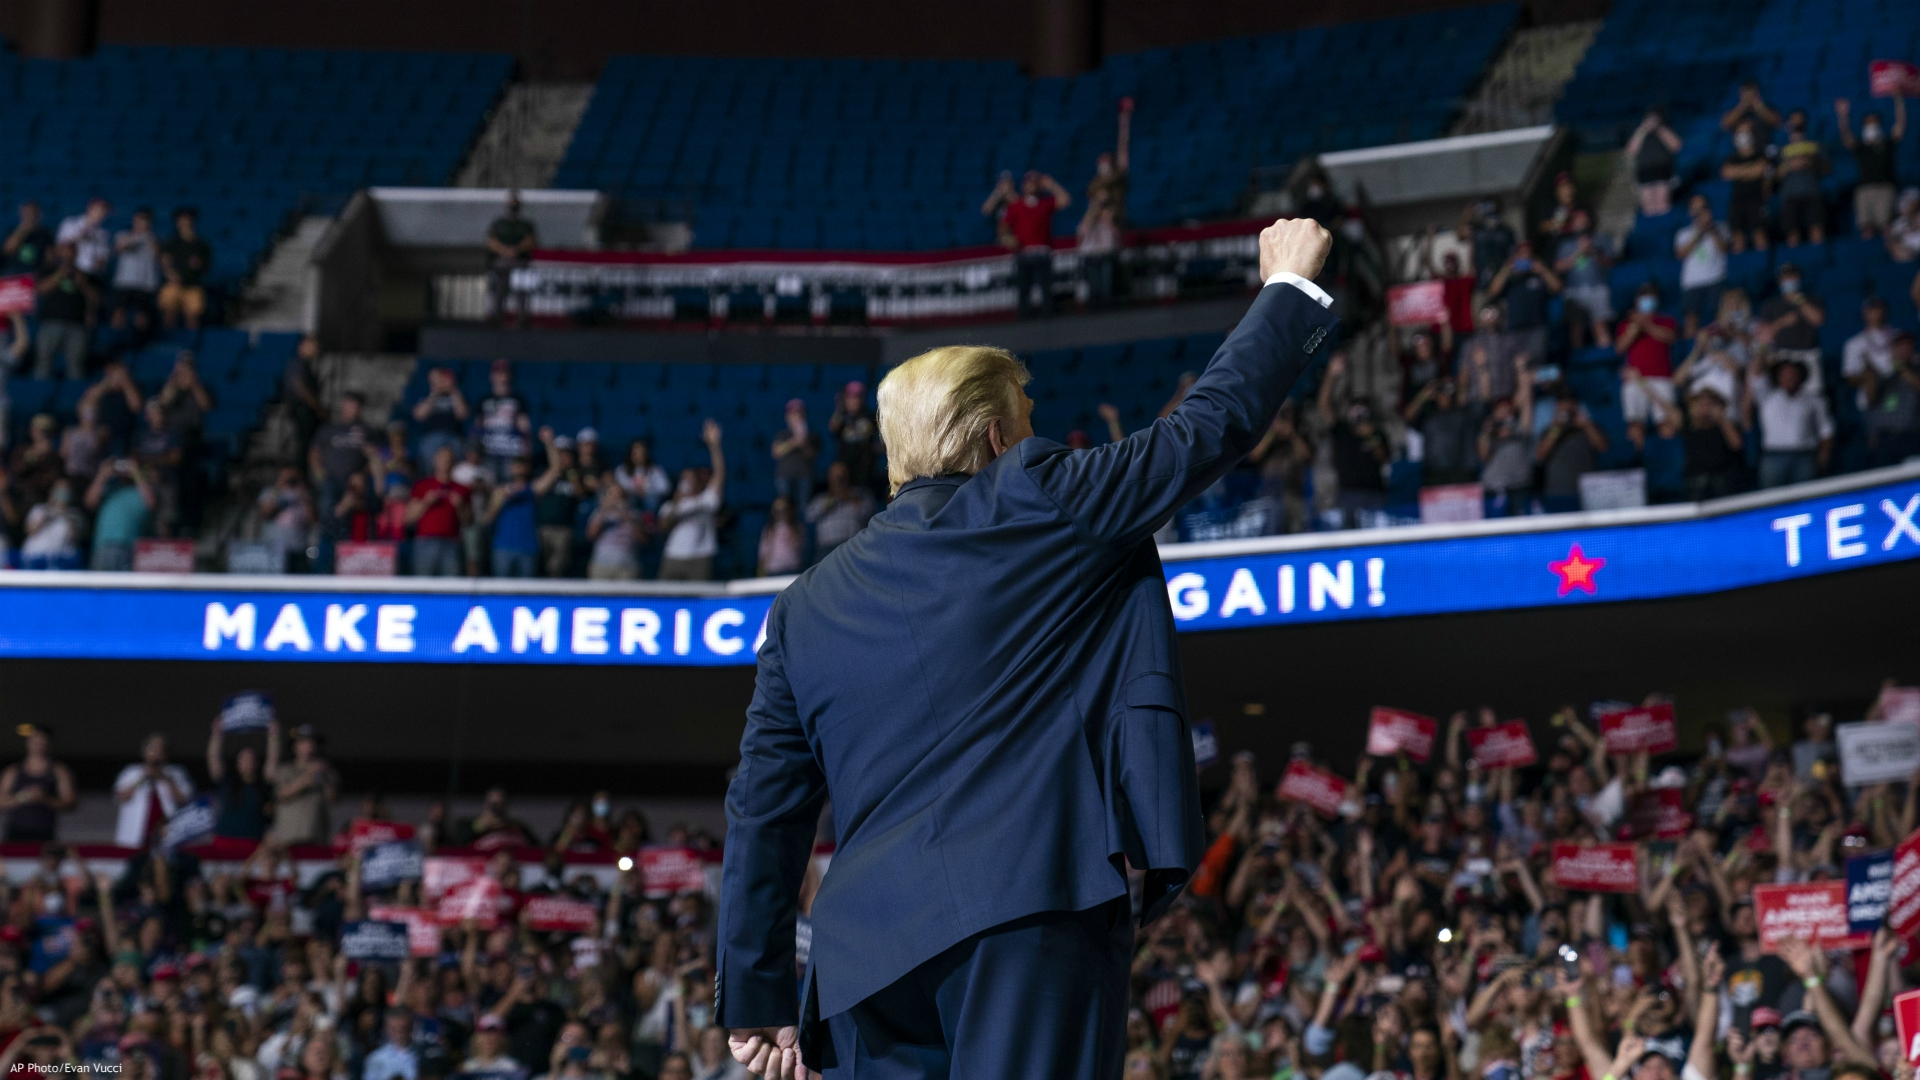 President Donald Trump arrives on stage to speak at a campaign rally at the BOK Center, Saturday, June 20, 2020, in Tulsa, Okla. (AP Photo/Evan Vucci)